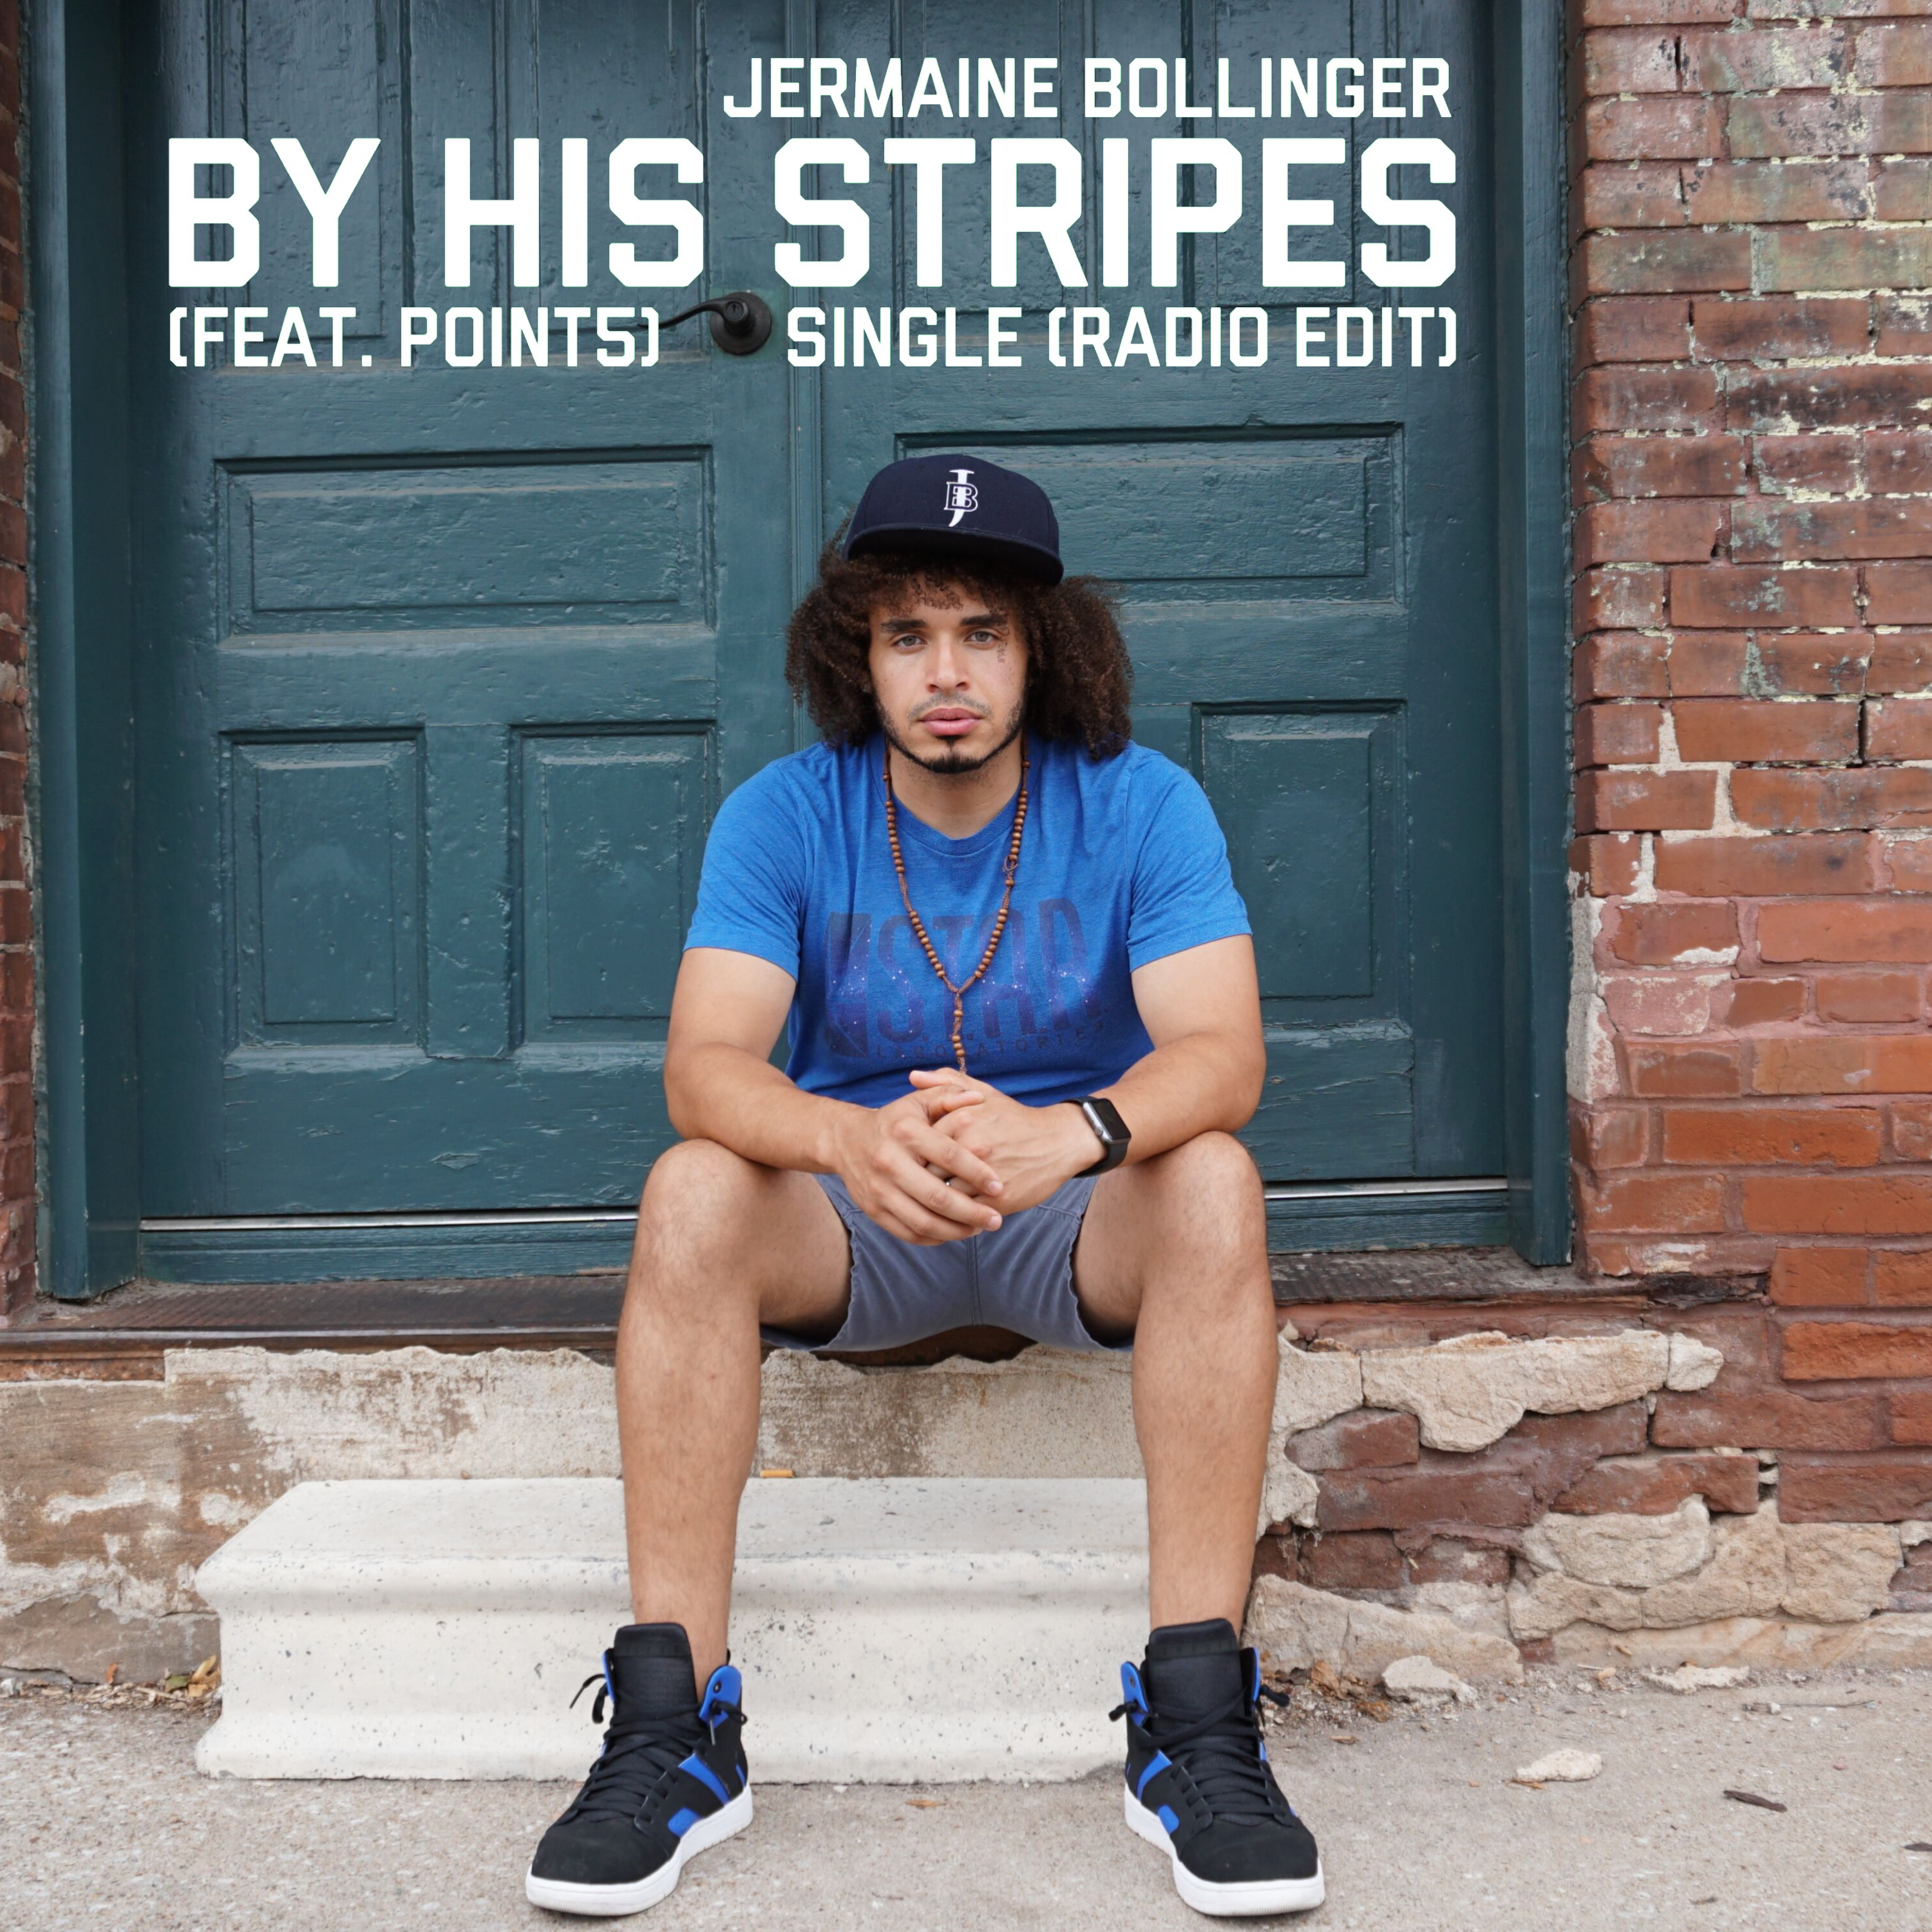 JERMAINE BOLLINGER'S 'BY HIS STRIPES' OUT TODAY